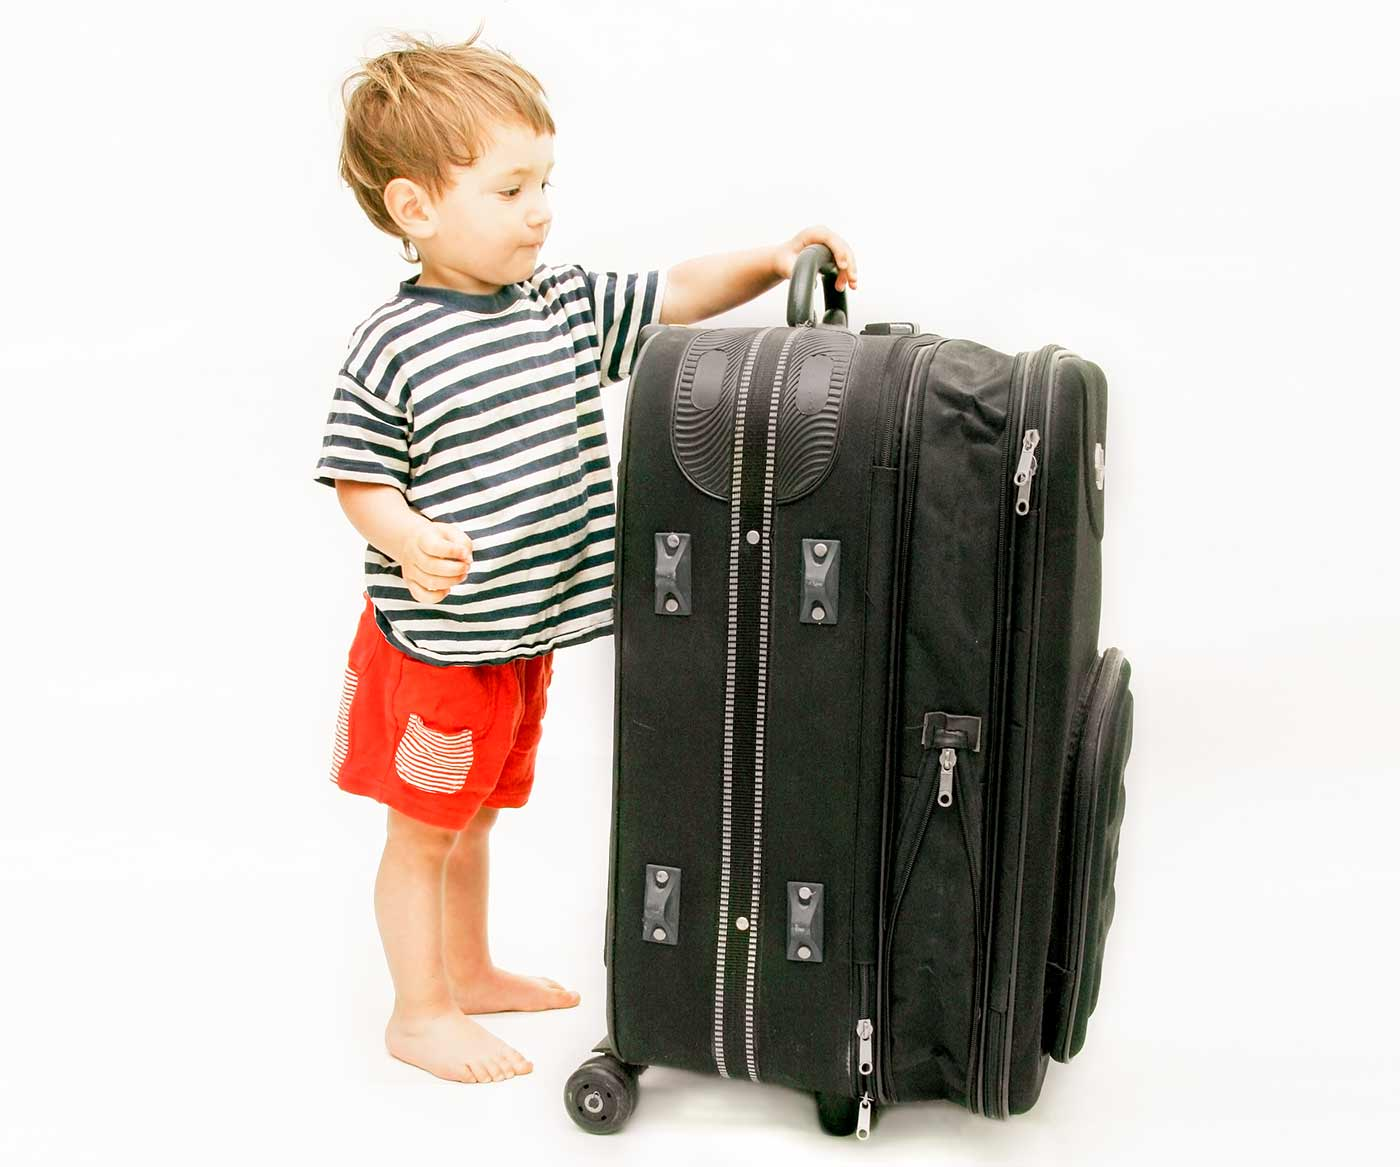 Toddler standing next to a luggage